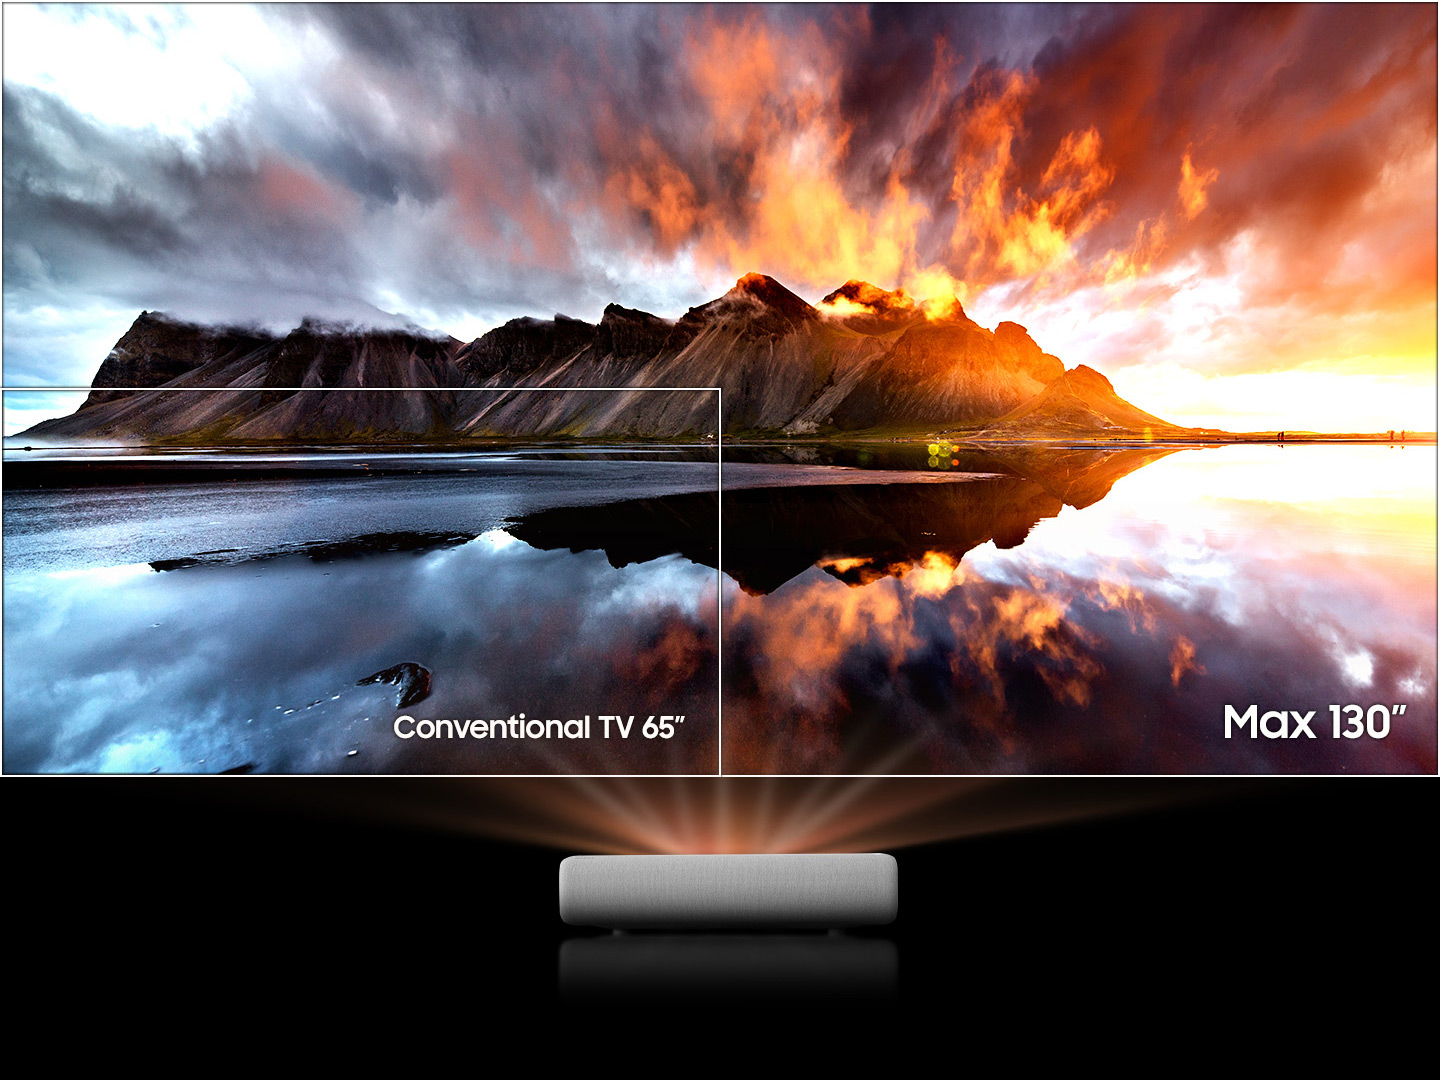 This video shows that contents can be viewed on a large screen through The Premiere. As the alphabet I area widens in the word BIG, it shows that The Premiere can project max 130 inches.